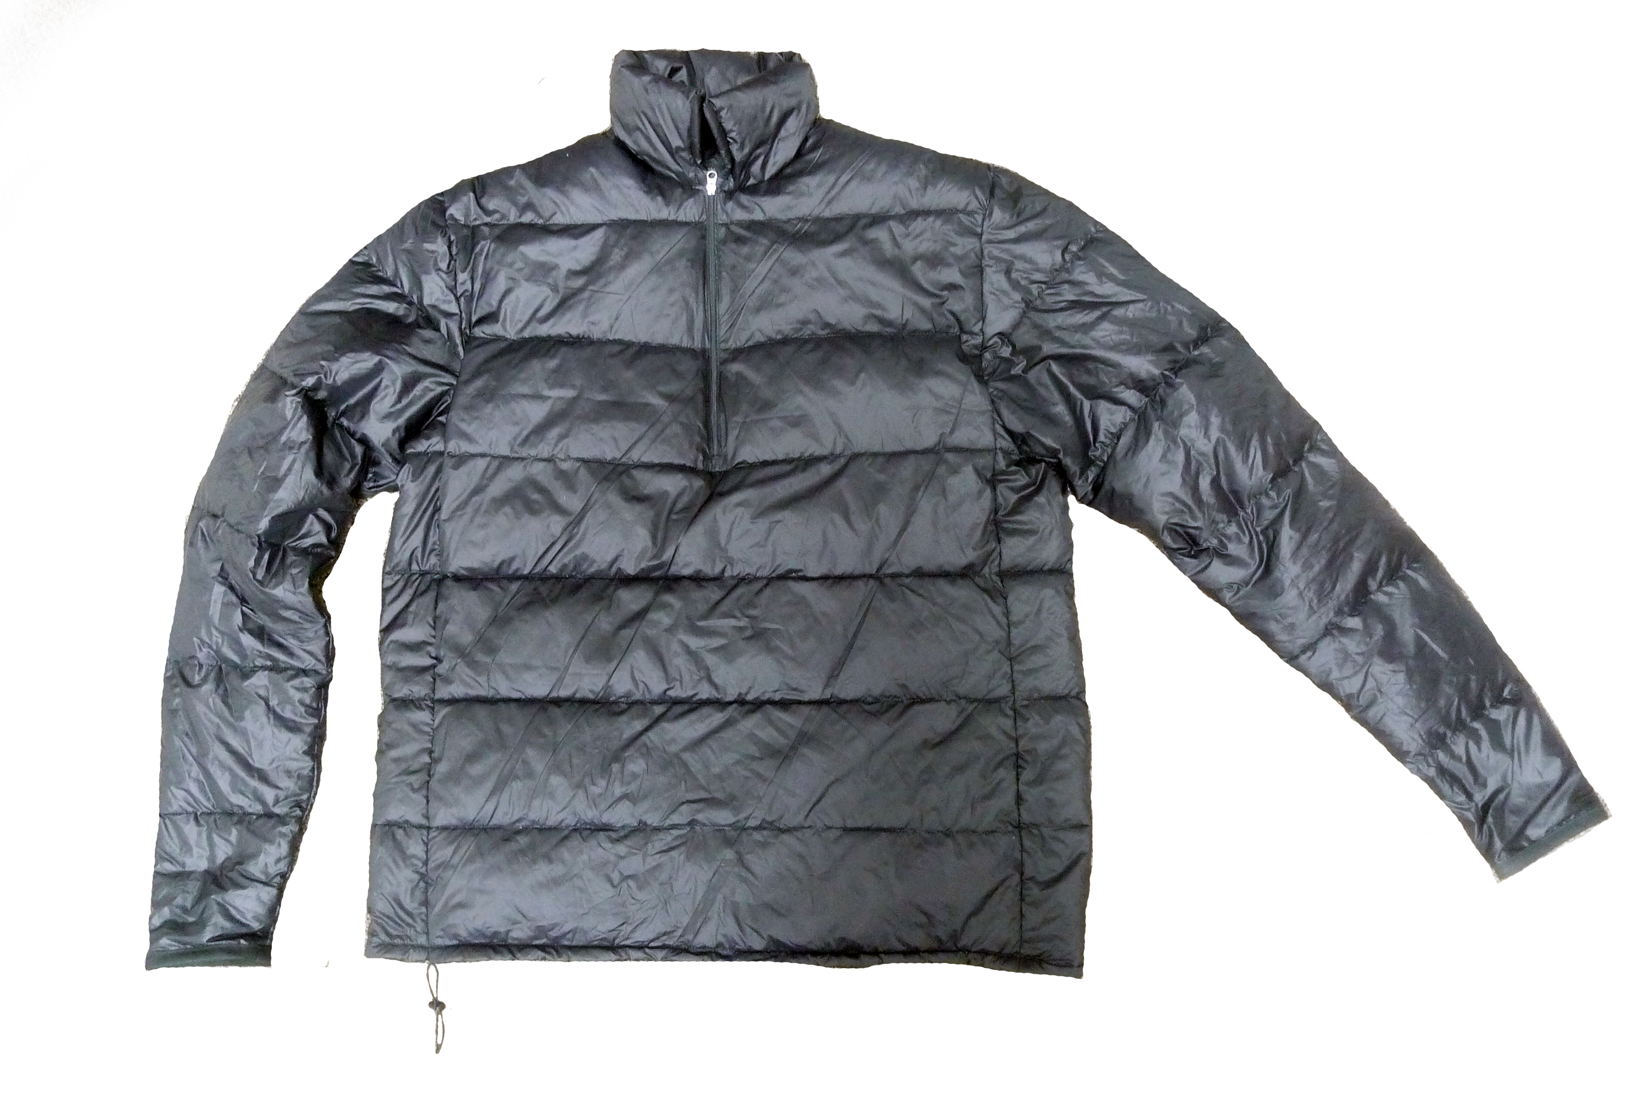 Borah Gear: Ultralight Down Jacket